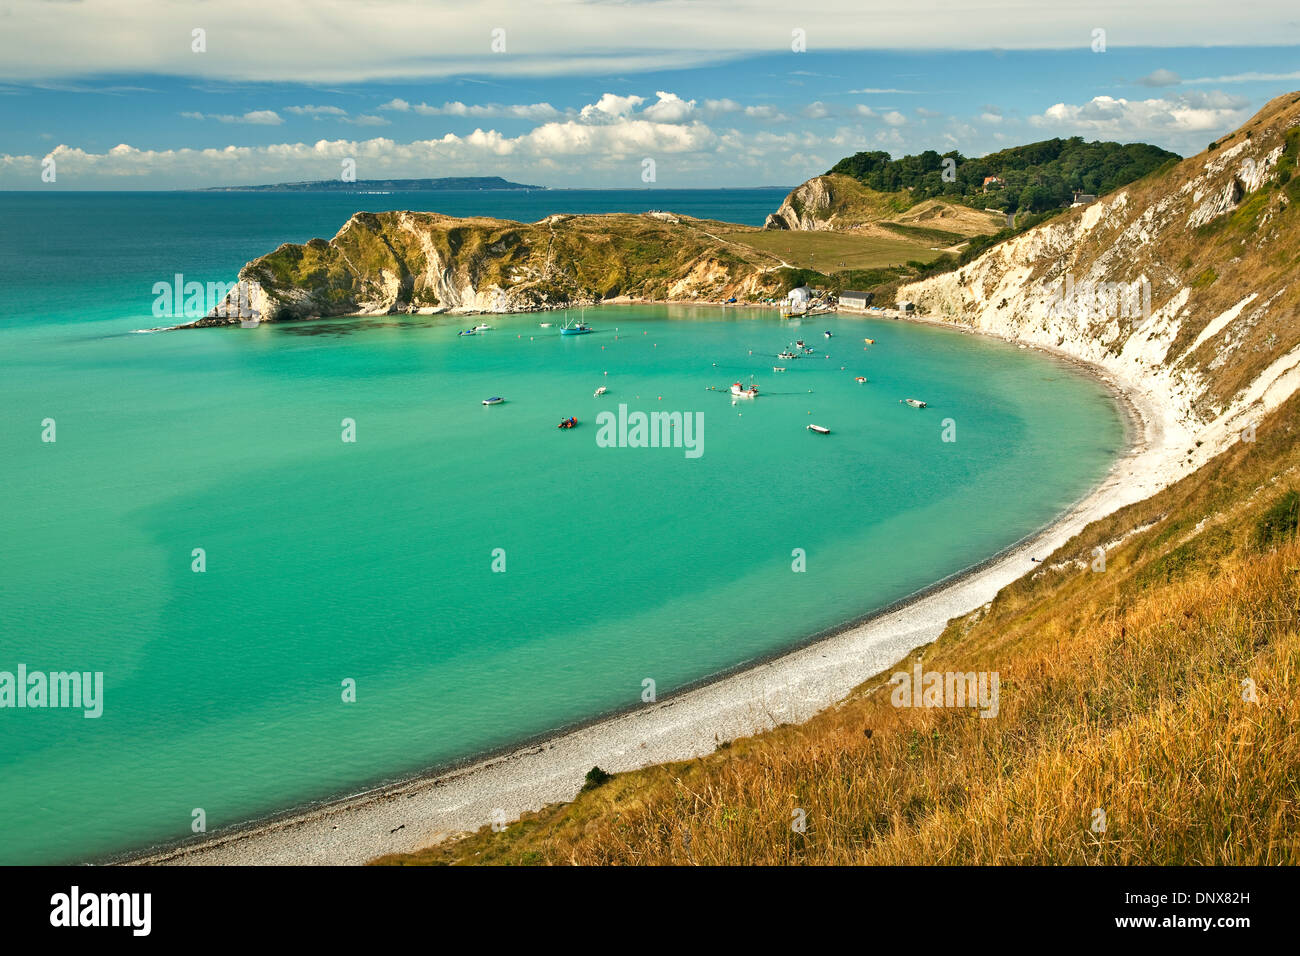 A view of Lulworth Cove, on the Jurassic Coast in Dorset UK photographed on a bright sunny day in September - Stock Image